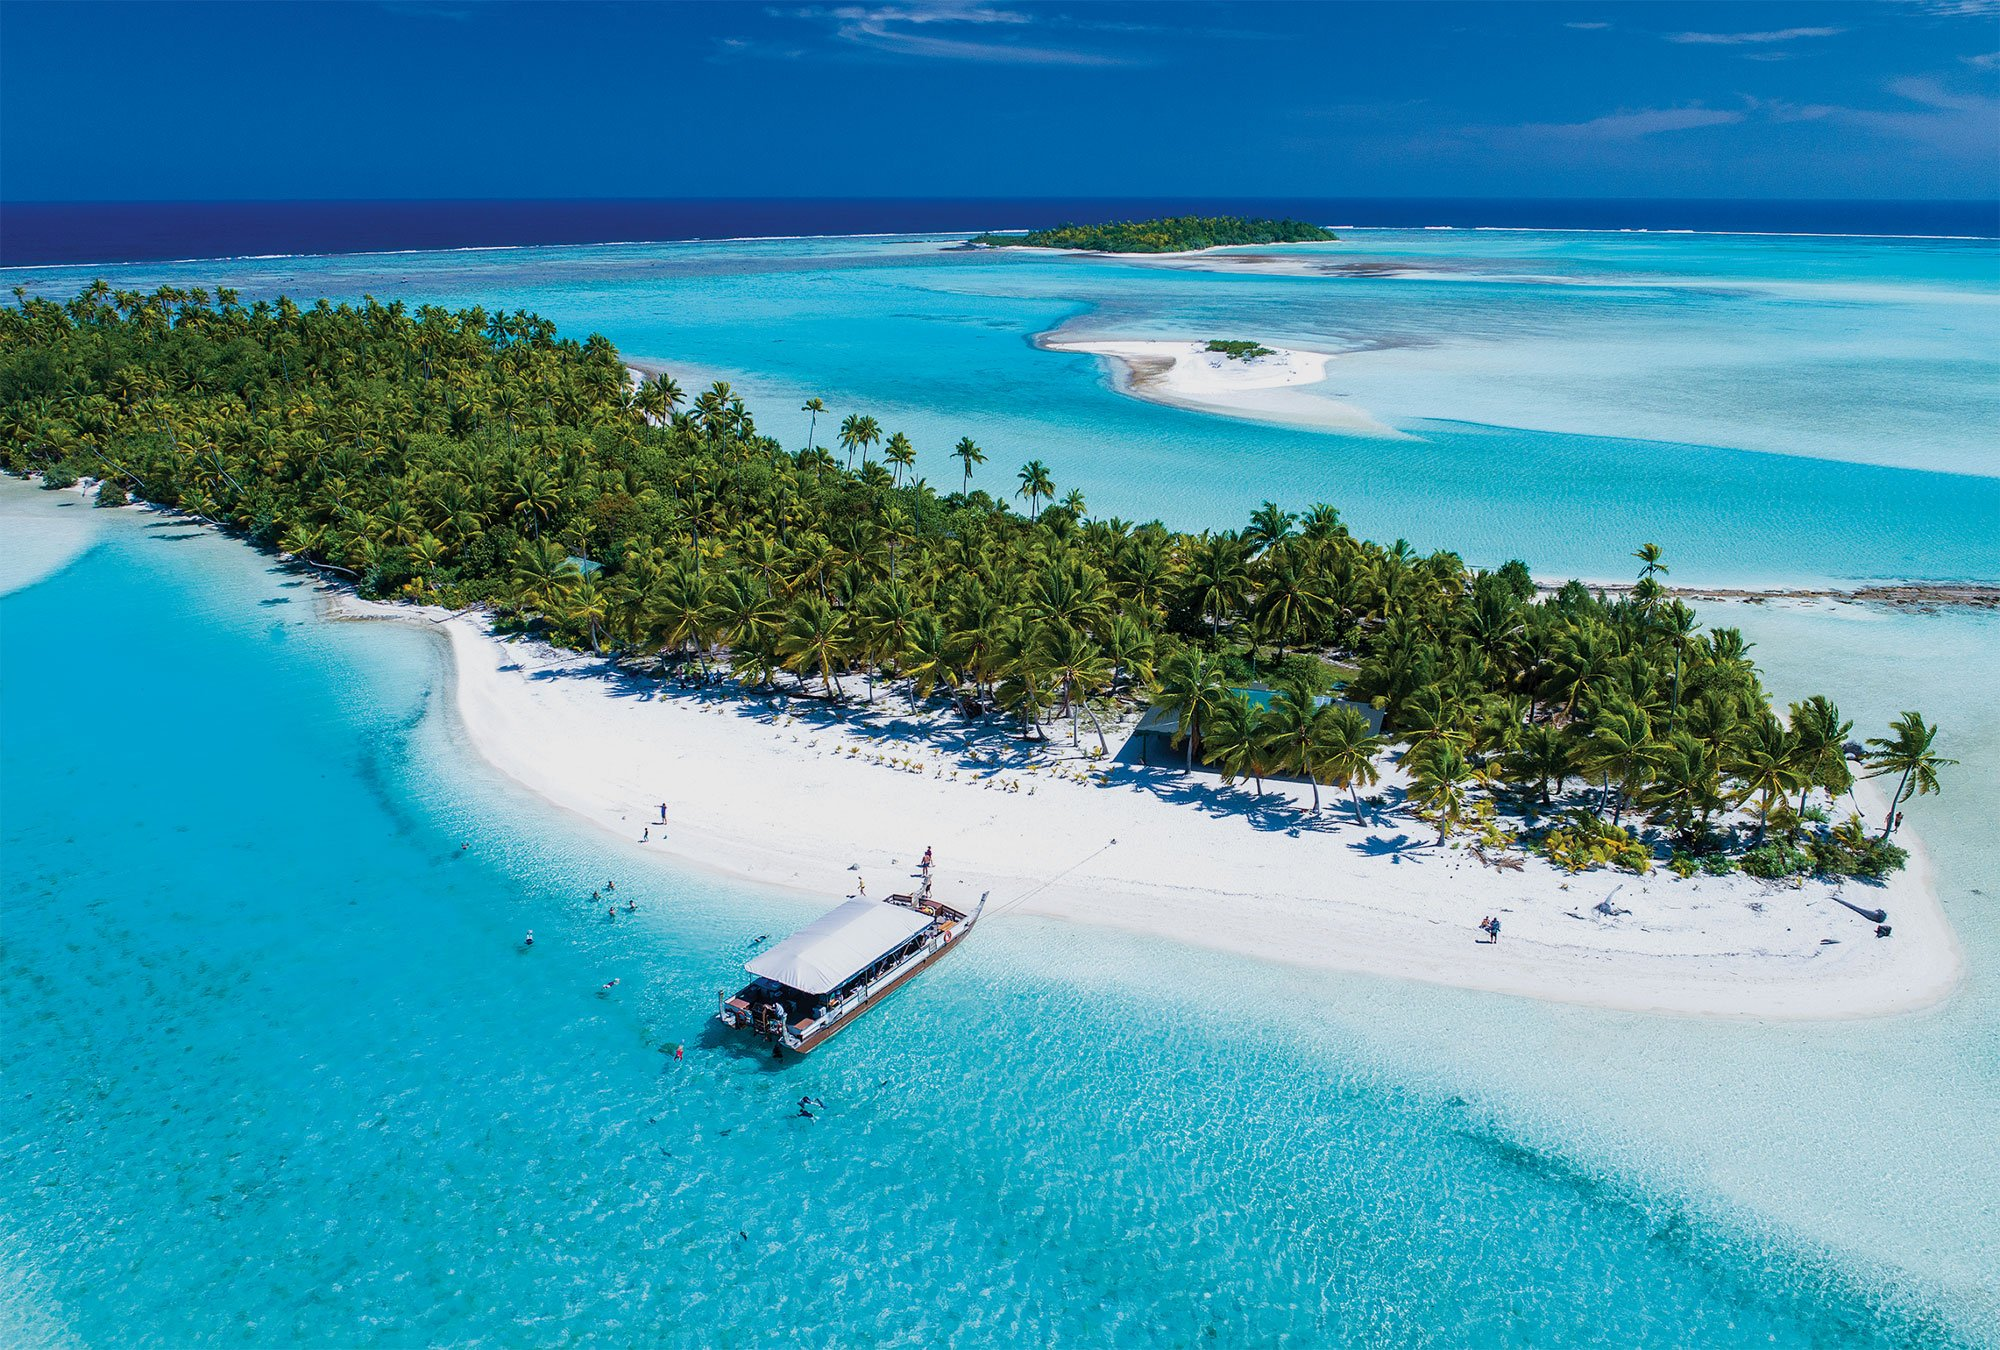 The Best Natural Attractions in the Cook Islands